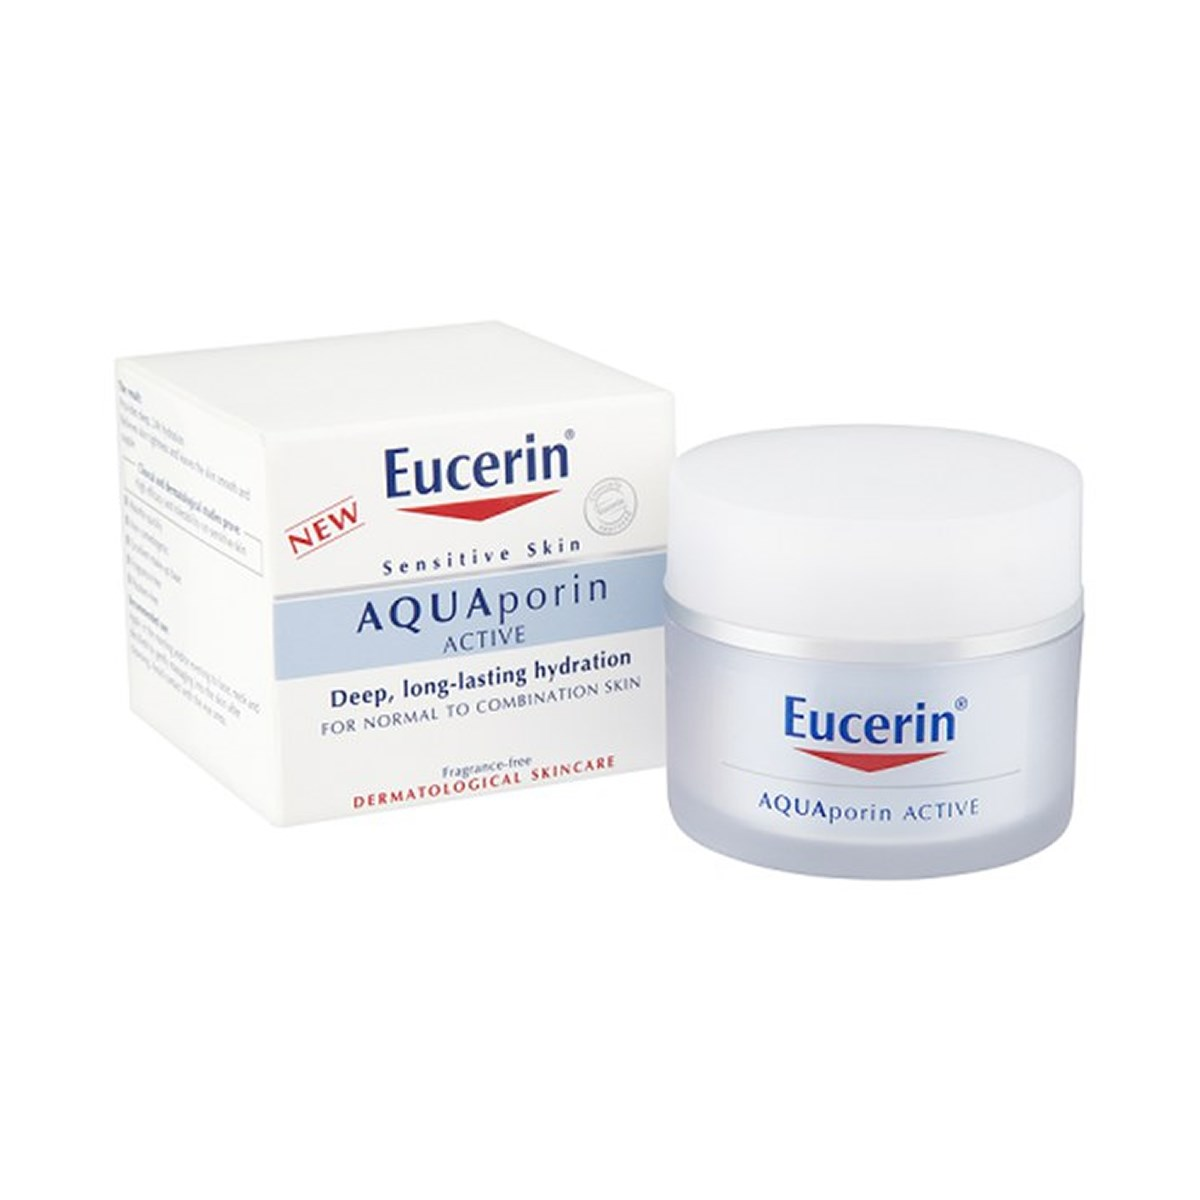 Eucerin AQUAporin Active Hydration For Normal to Combination Skin